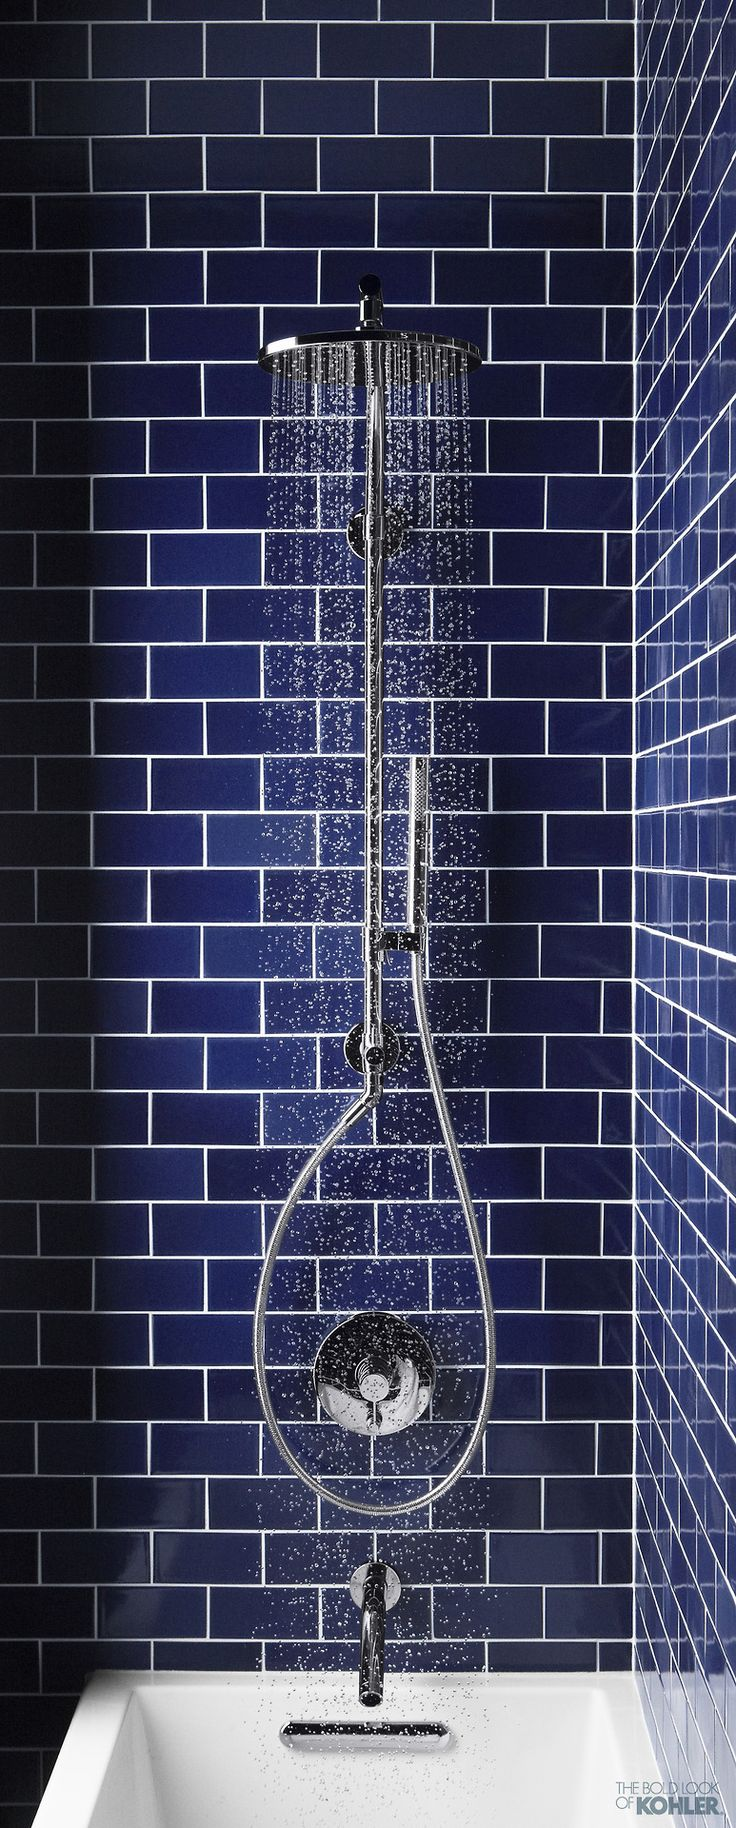 best 25 bath tiles ideas on pinterest small bathroom tiles blue bathroom mandi pake ini serasa jadi raja kohler pintowin